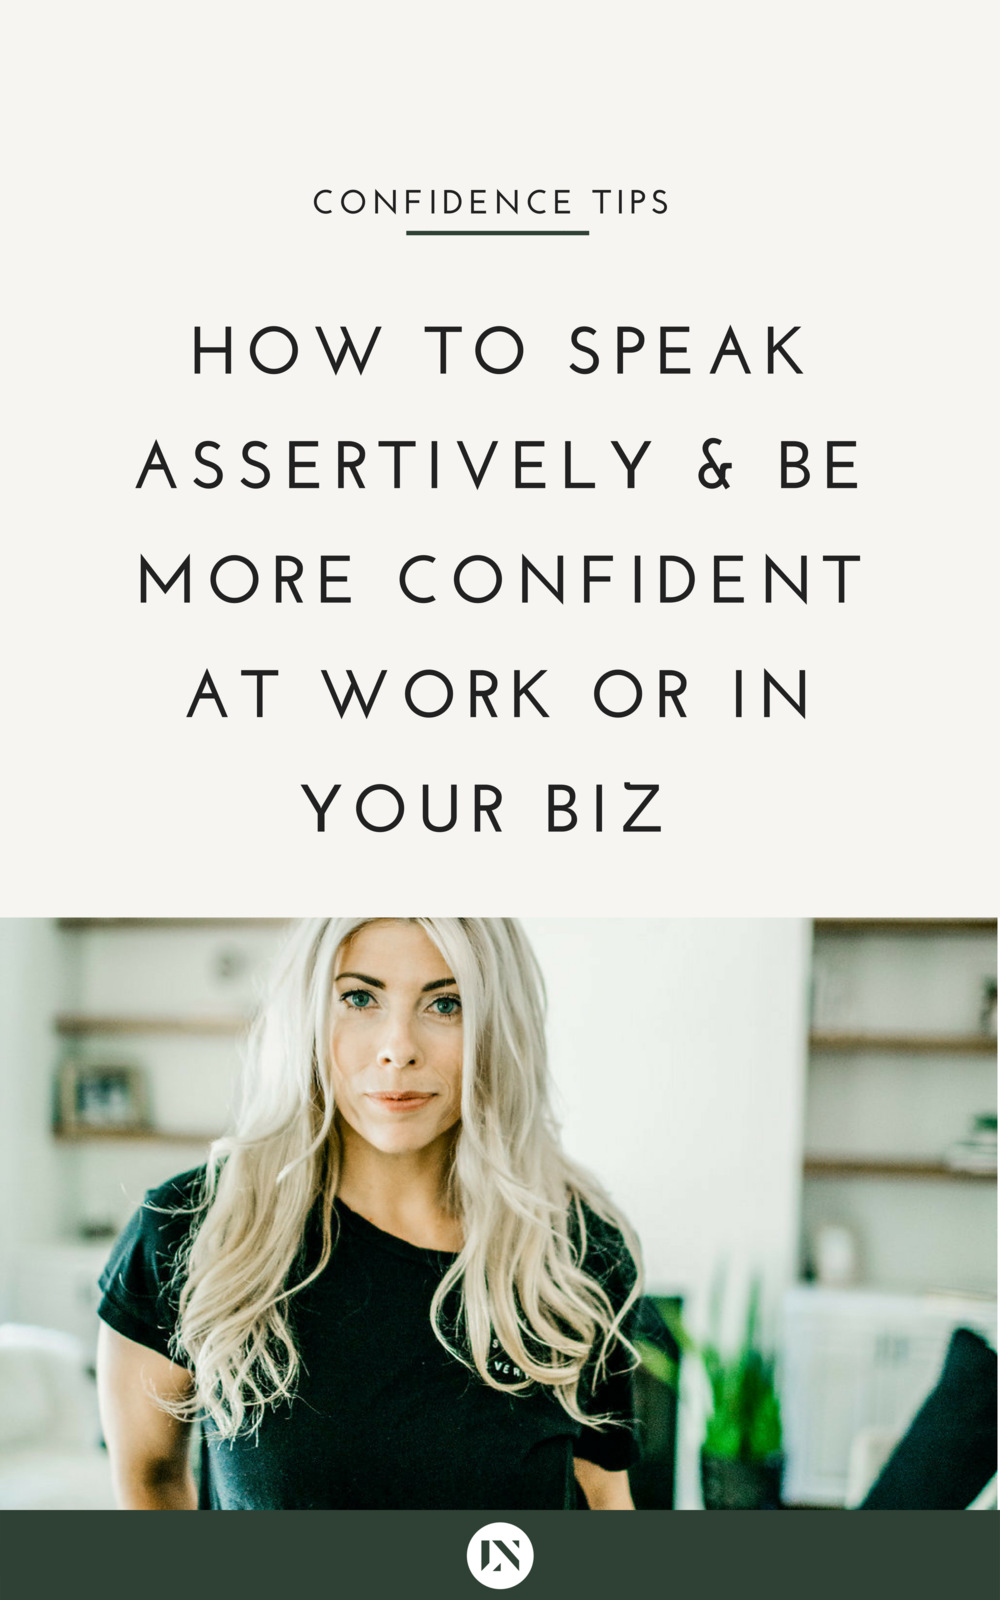 How to Speak Assertively and Be More Confident at Work or in Your Biz